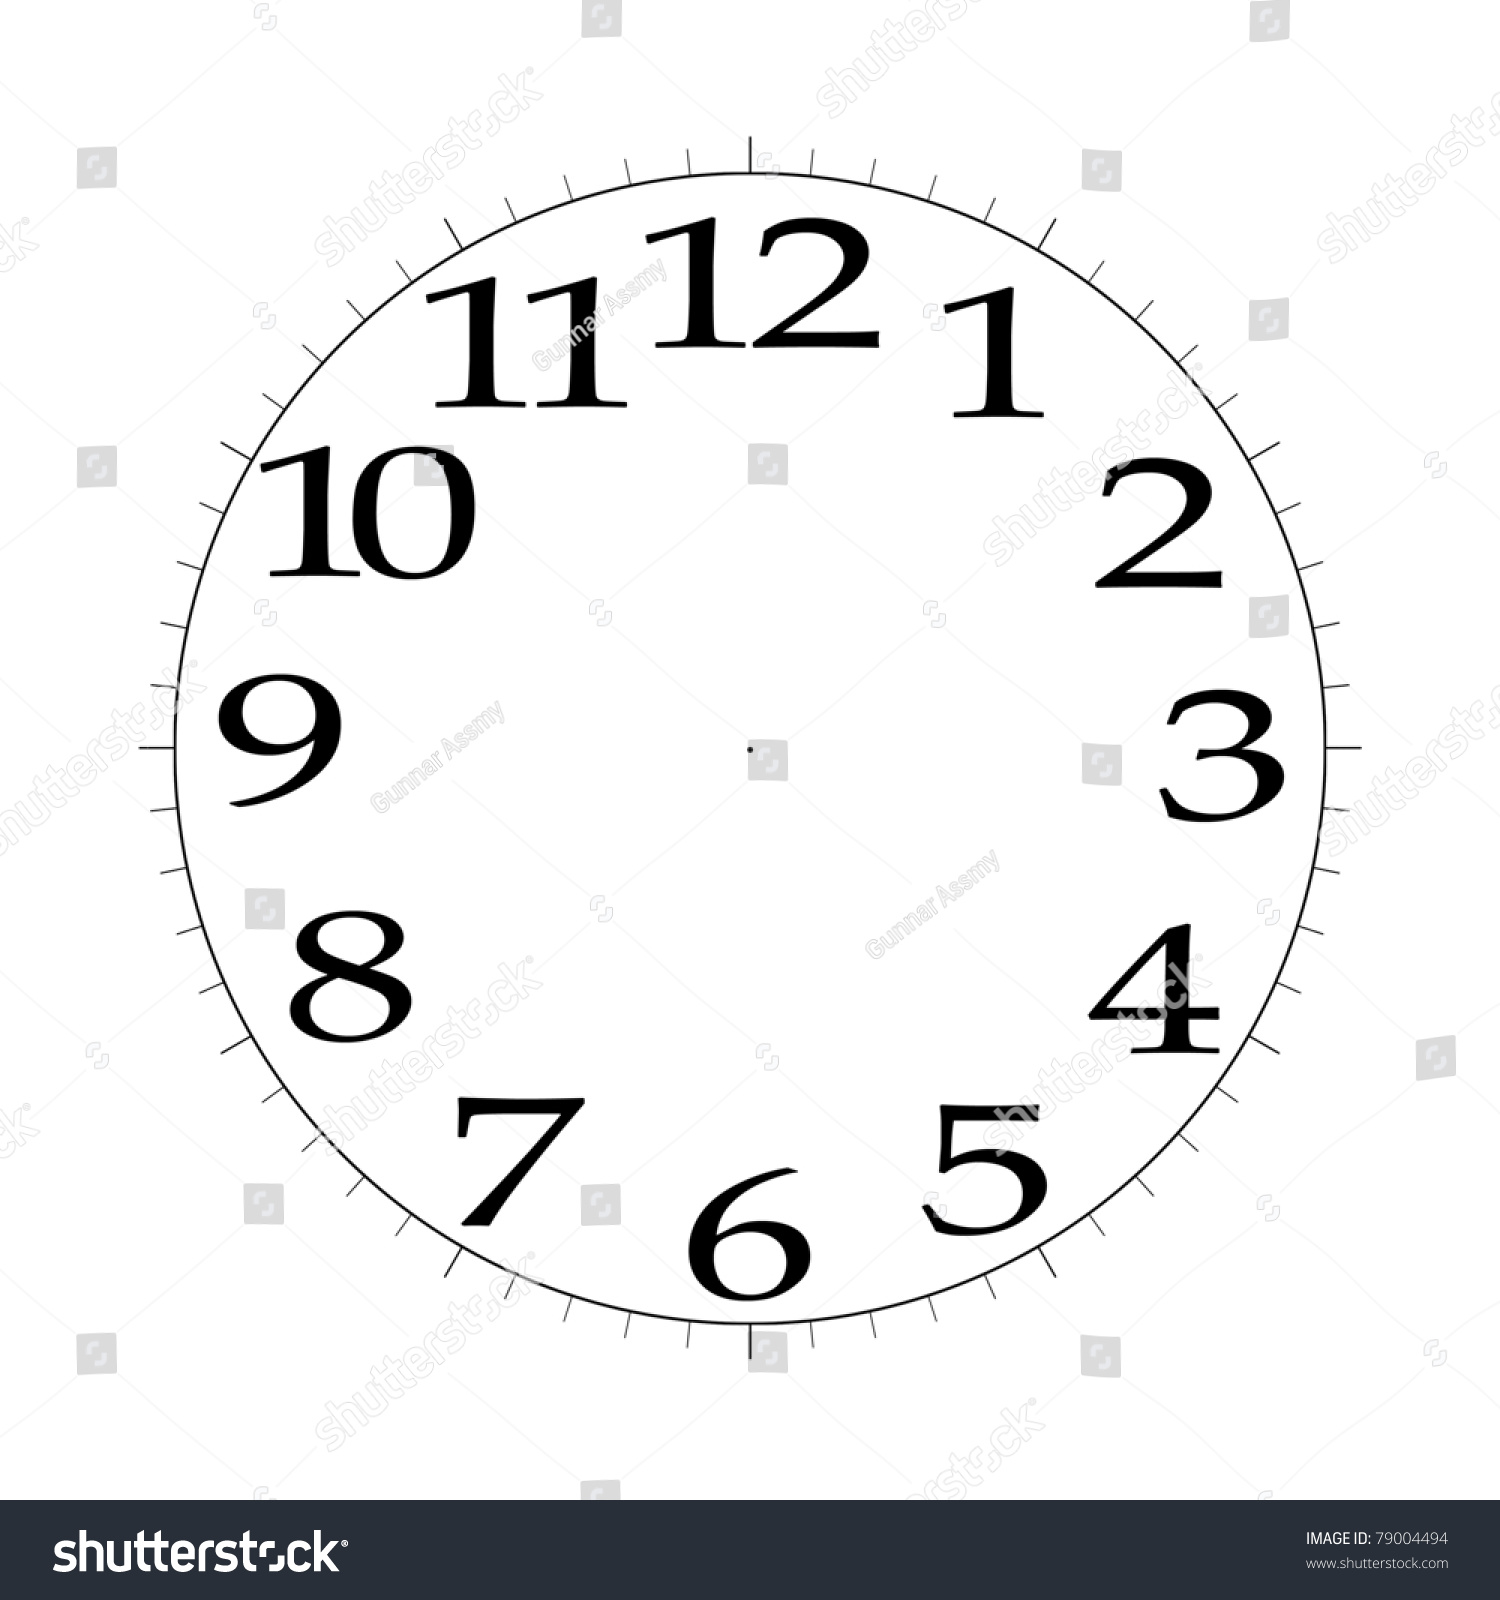 Clock Face Template 4k Illustration 79004494 Shutterstock – Clock Face Template